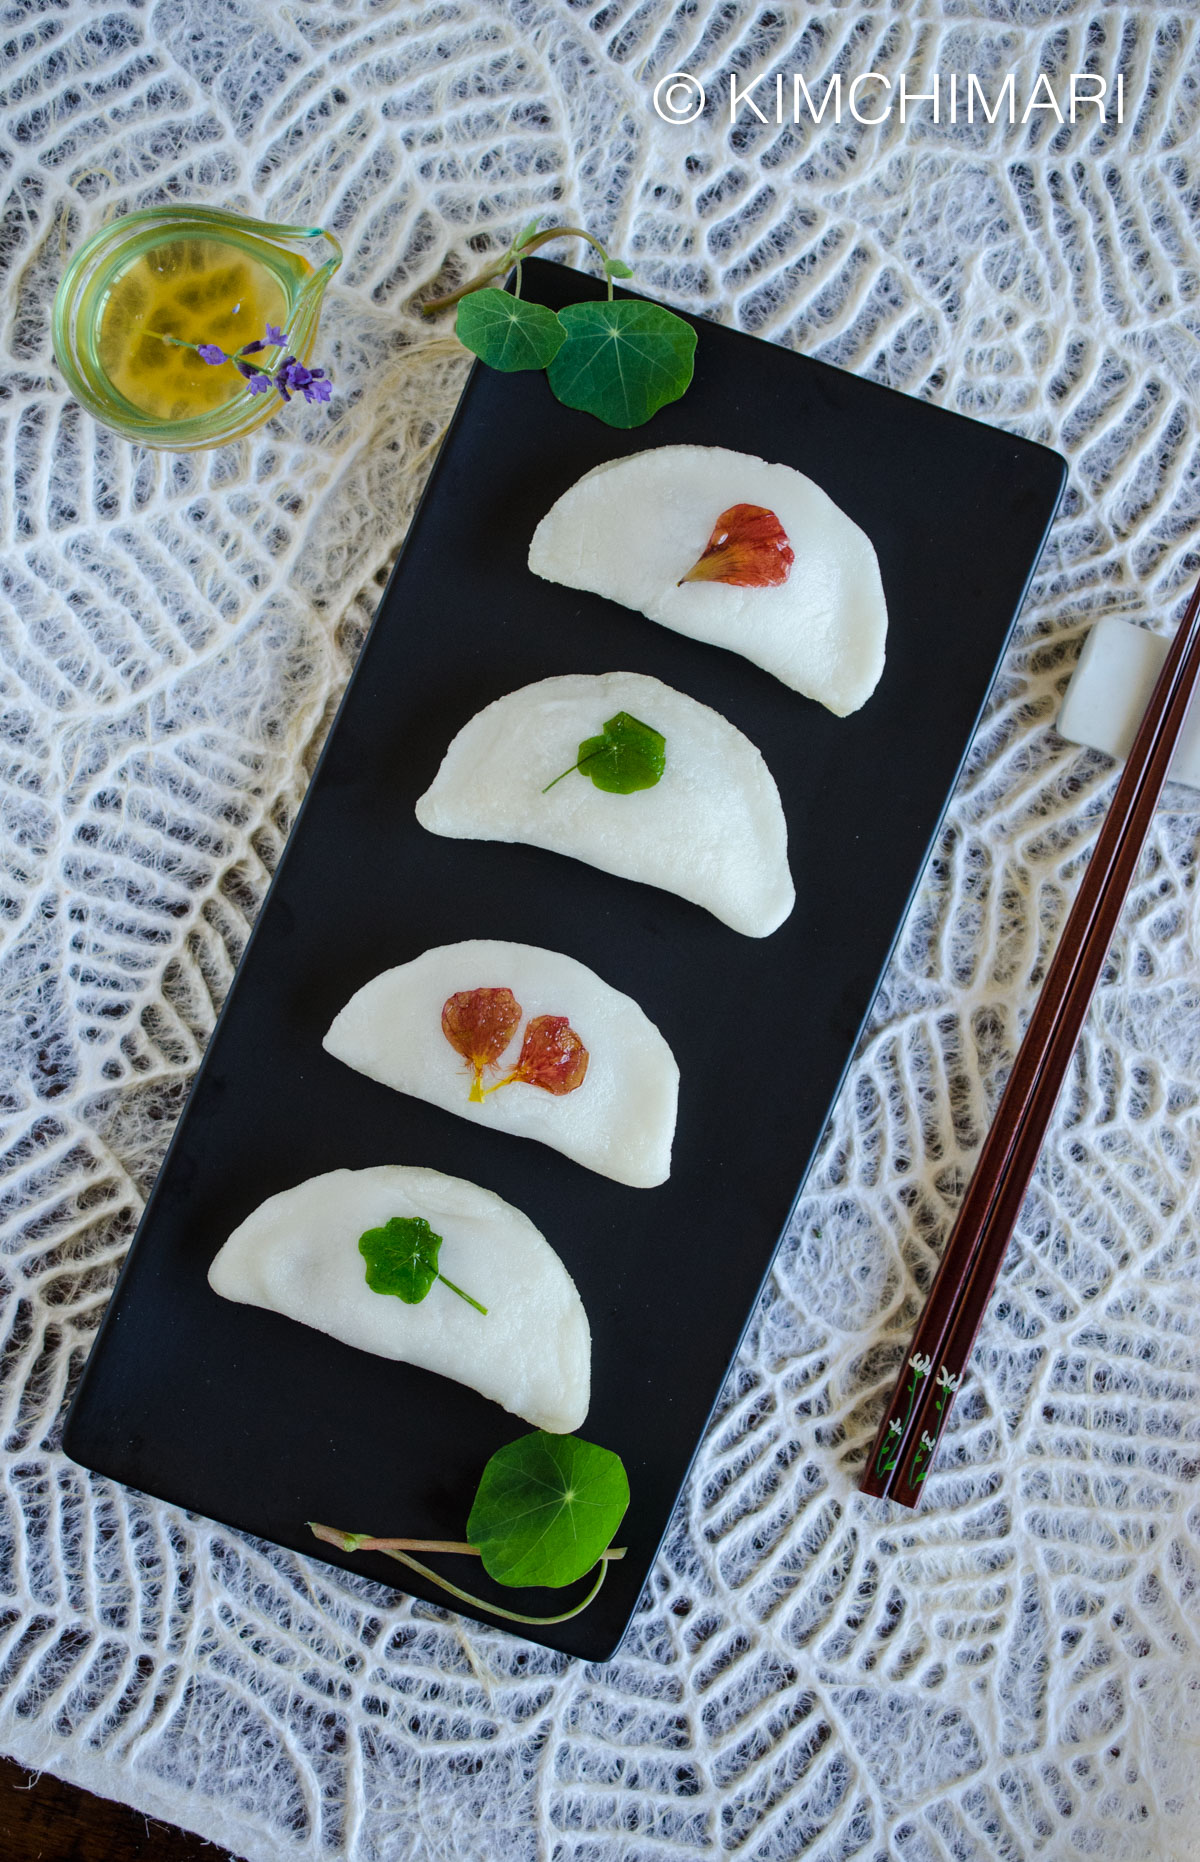 Pan-Fried Rice Cake Dumplings (Bukkumi) with Nasturtiums